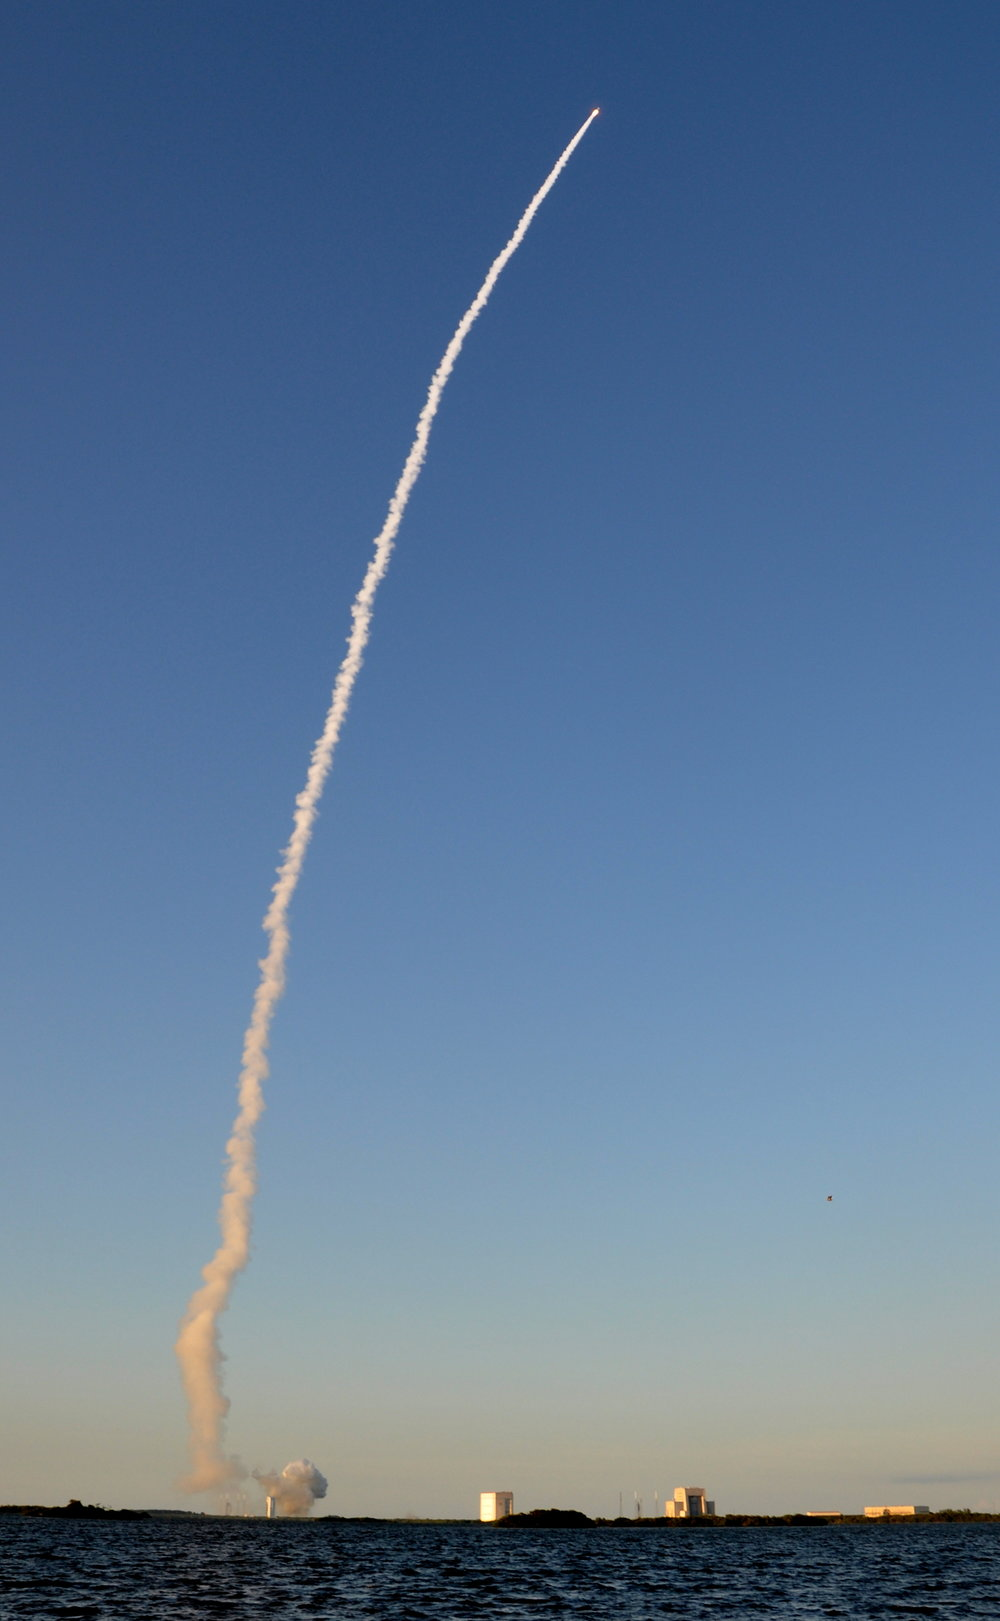 Streak Shot of Atlas V